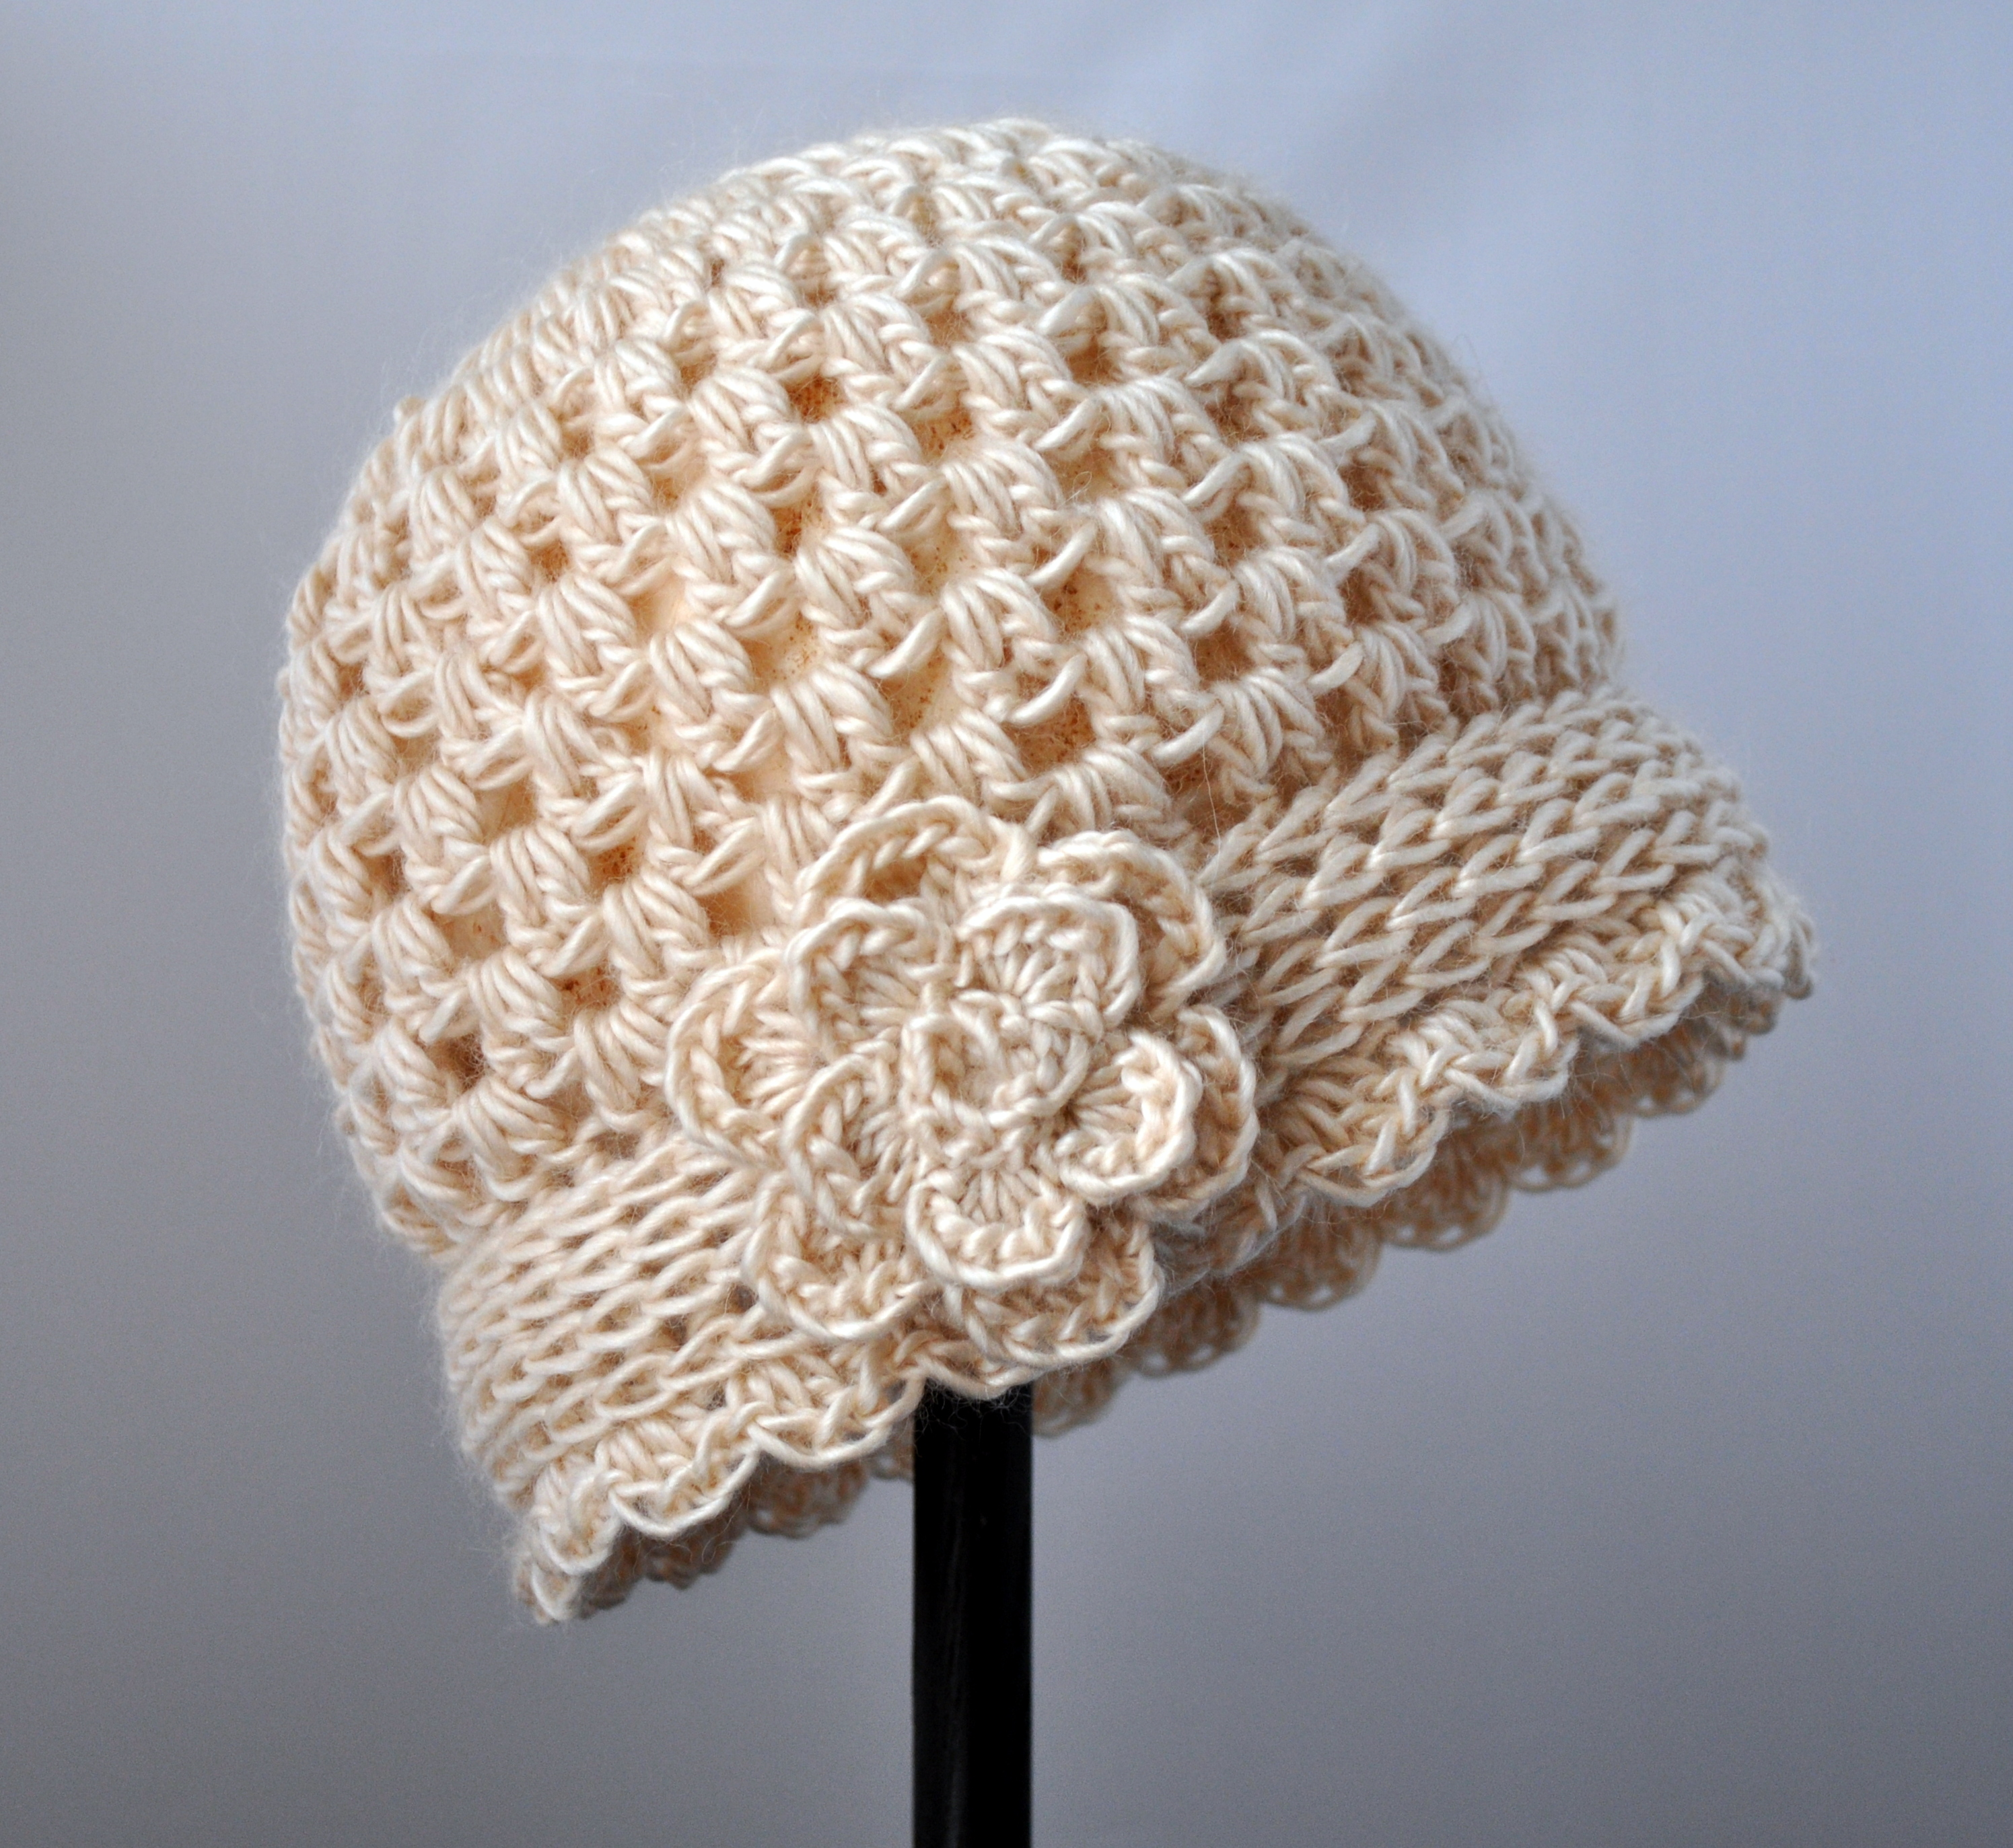 Crochet Patterns To Buy : Crochet Vintage Flowered Cloche Pattern Classy Crochet